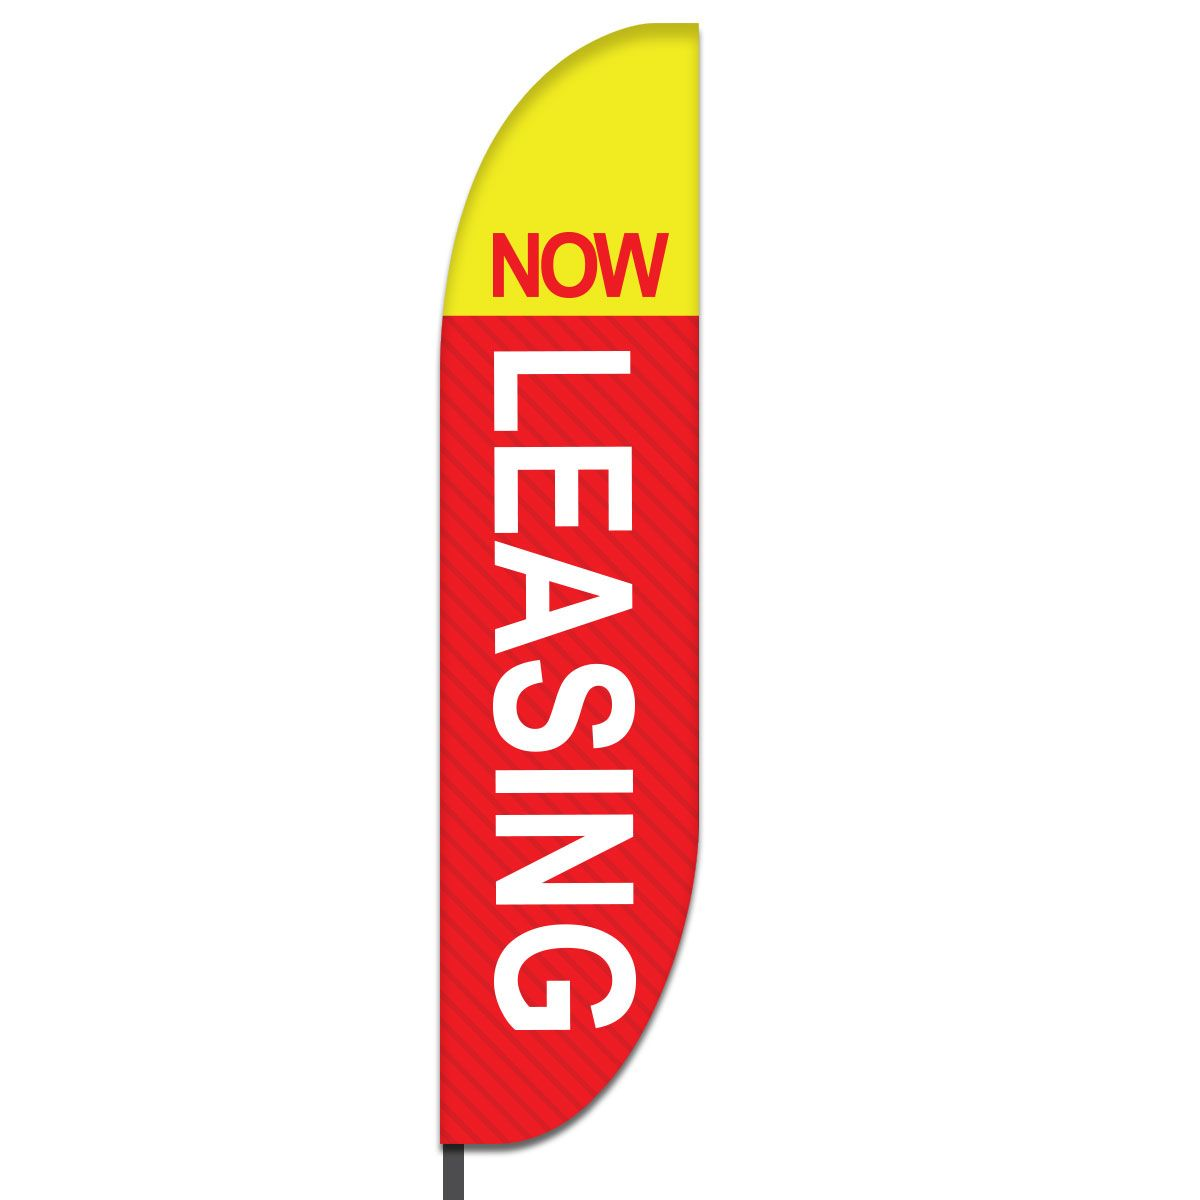 Now Leasing Flags Design 04